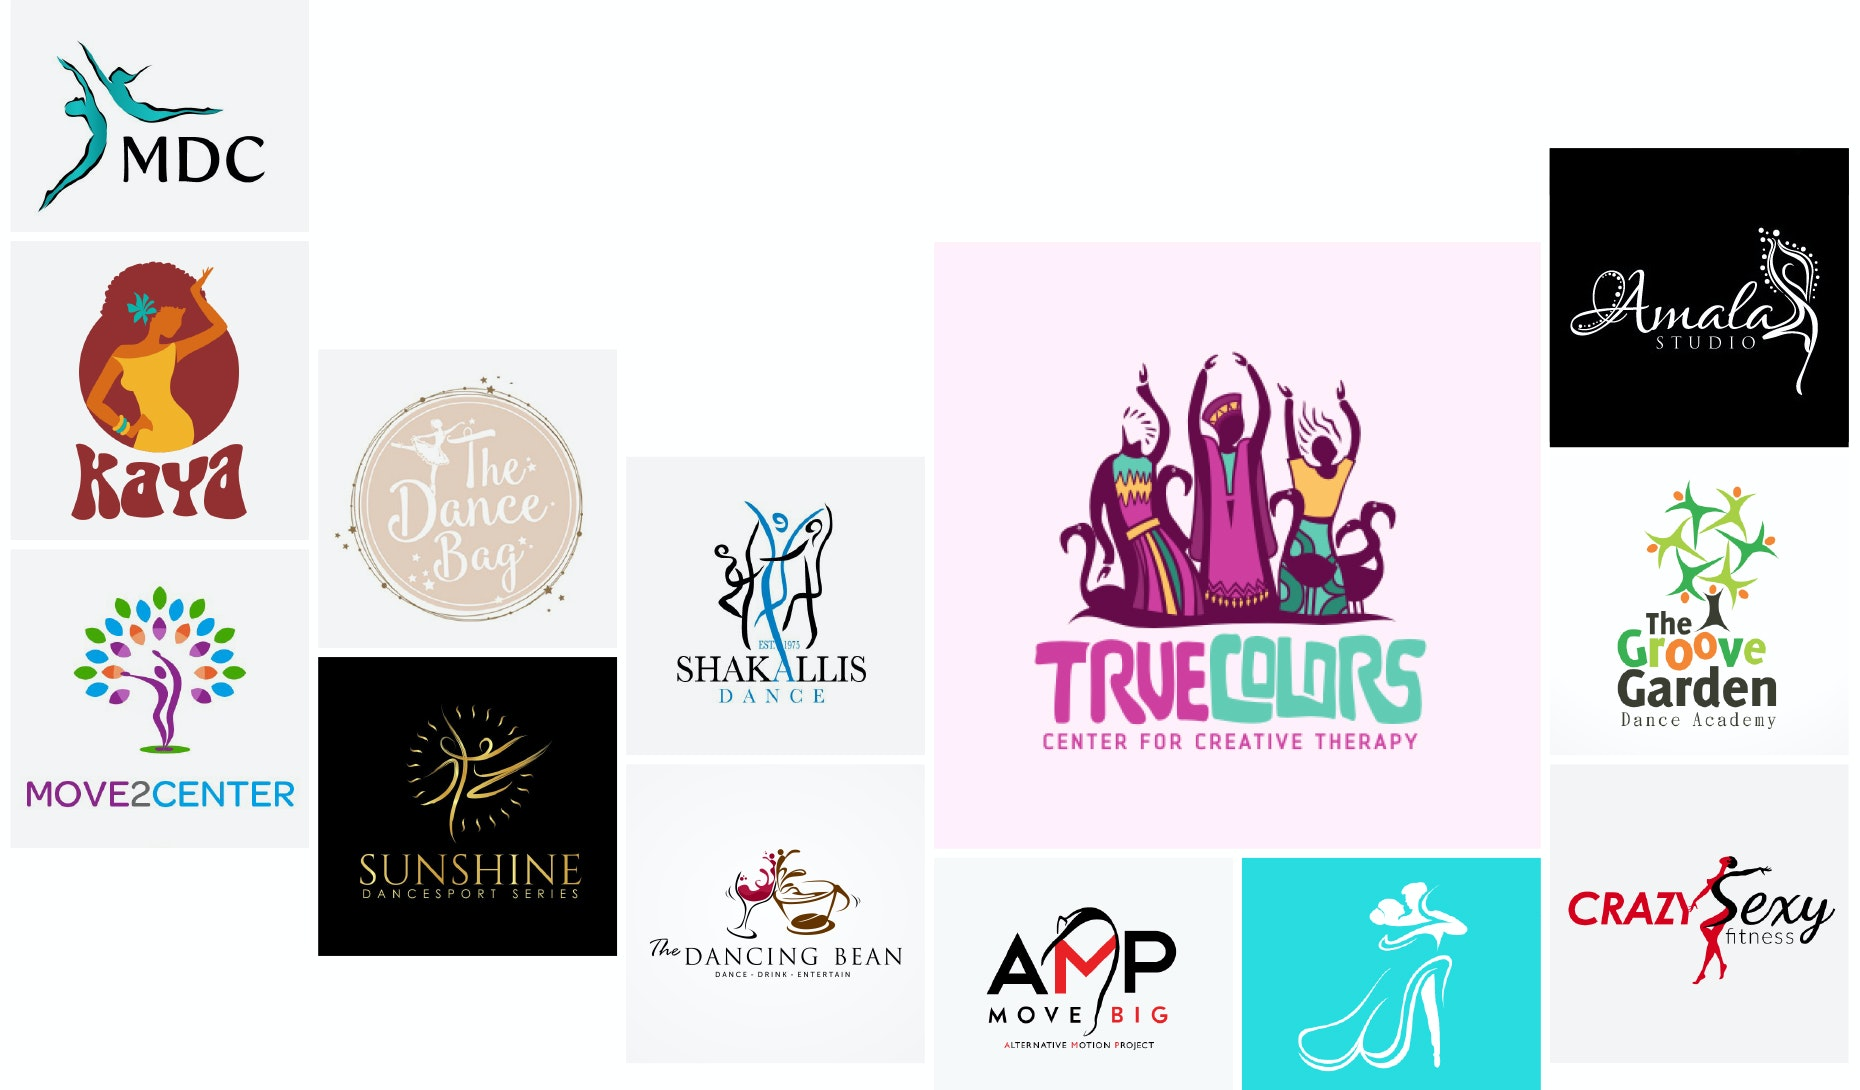 41 dance logos to get you groovin'